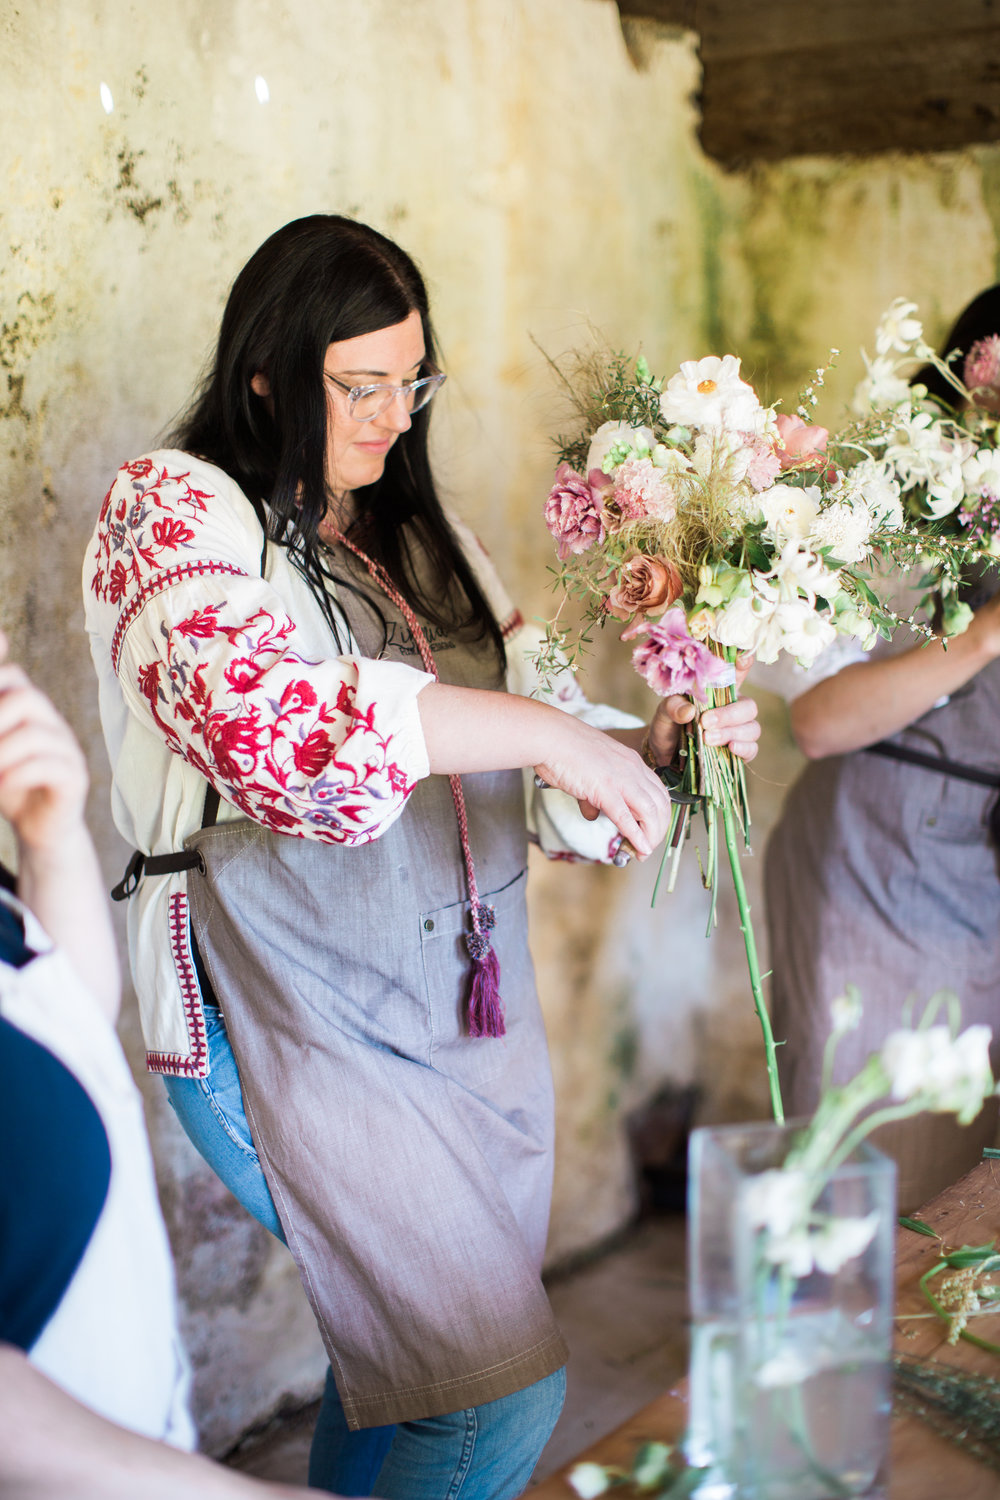 Zinnia Floral Designs - Spring class at the farm